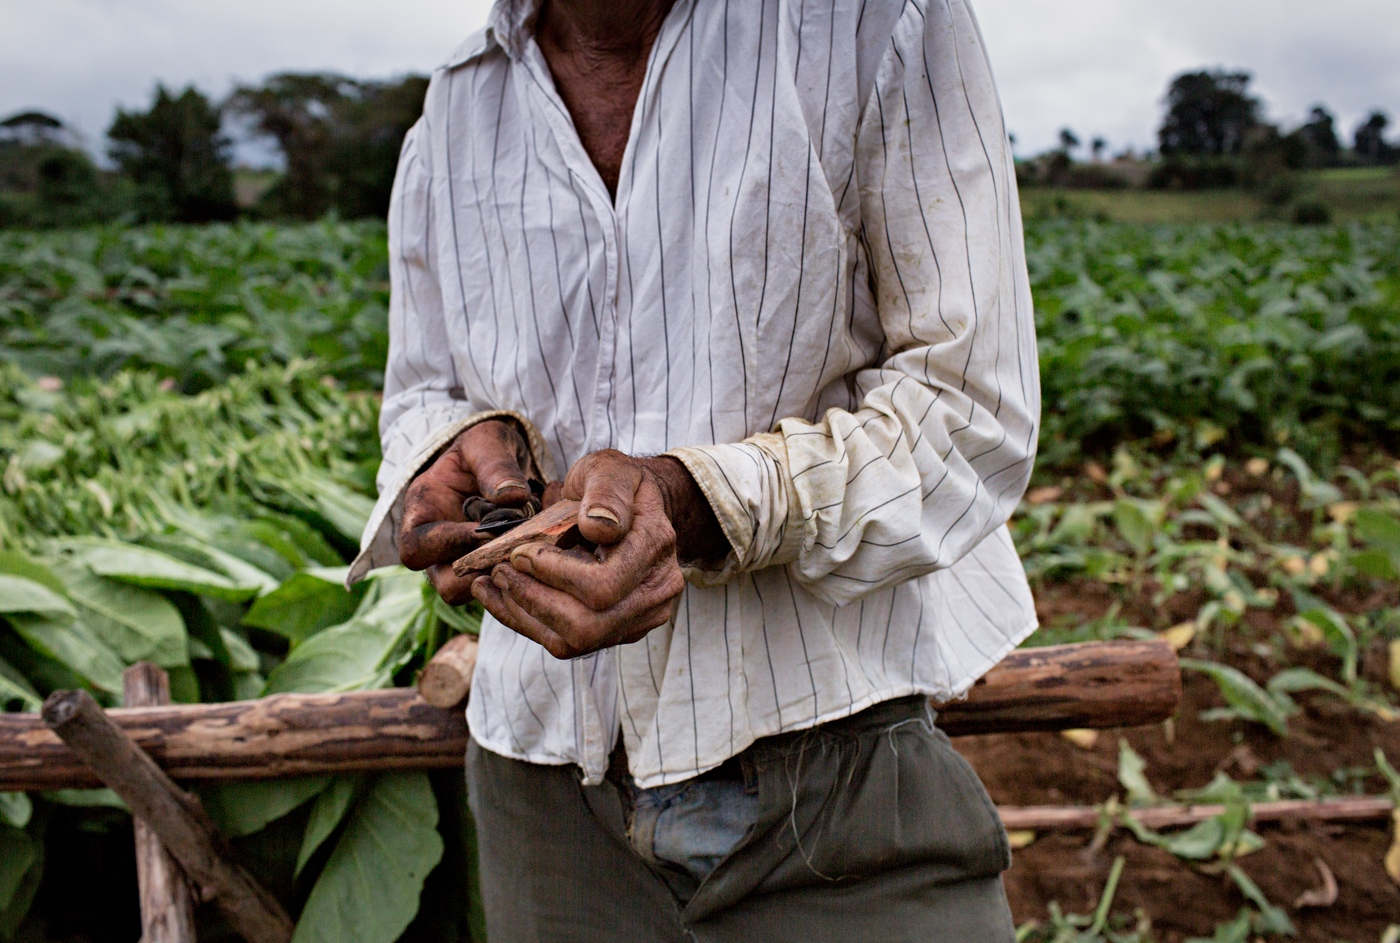 A tobacco farm worker sharpens his knife in a tobacco field during the harvest season in Vinales-a farming village two hours drive from Havana, Cuba